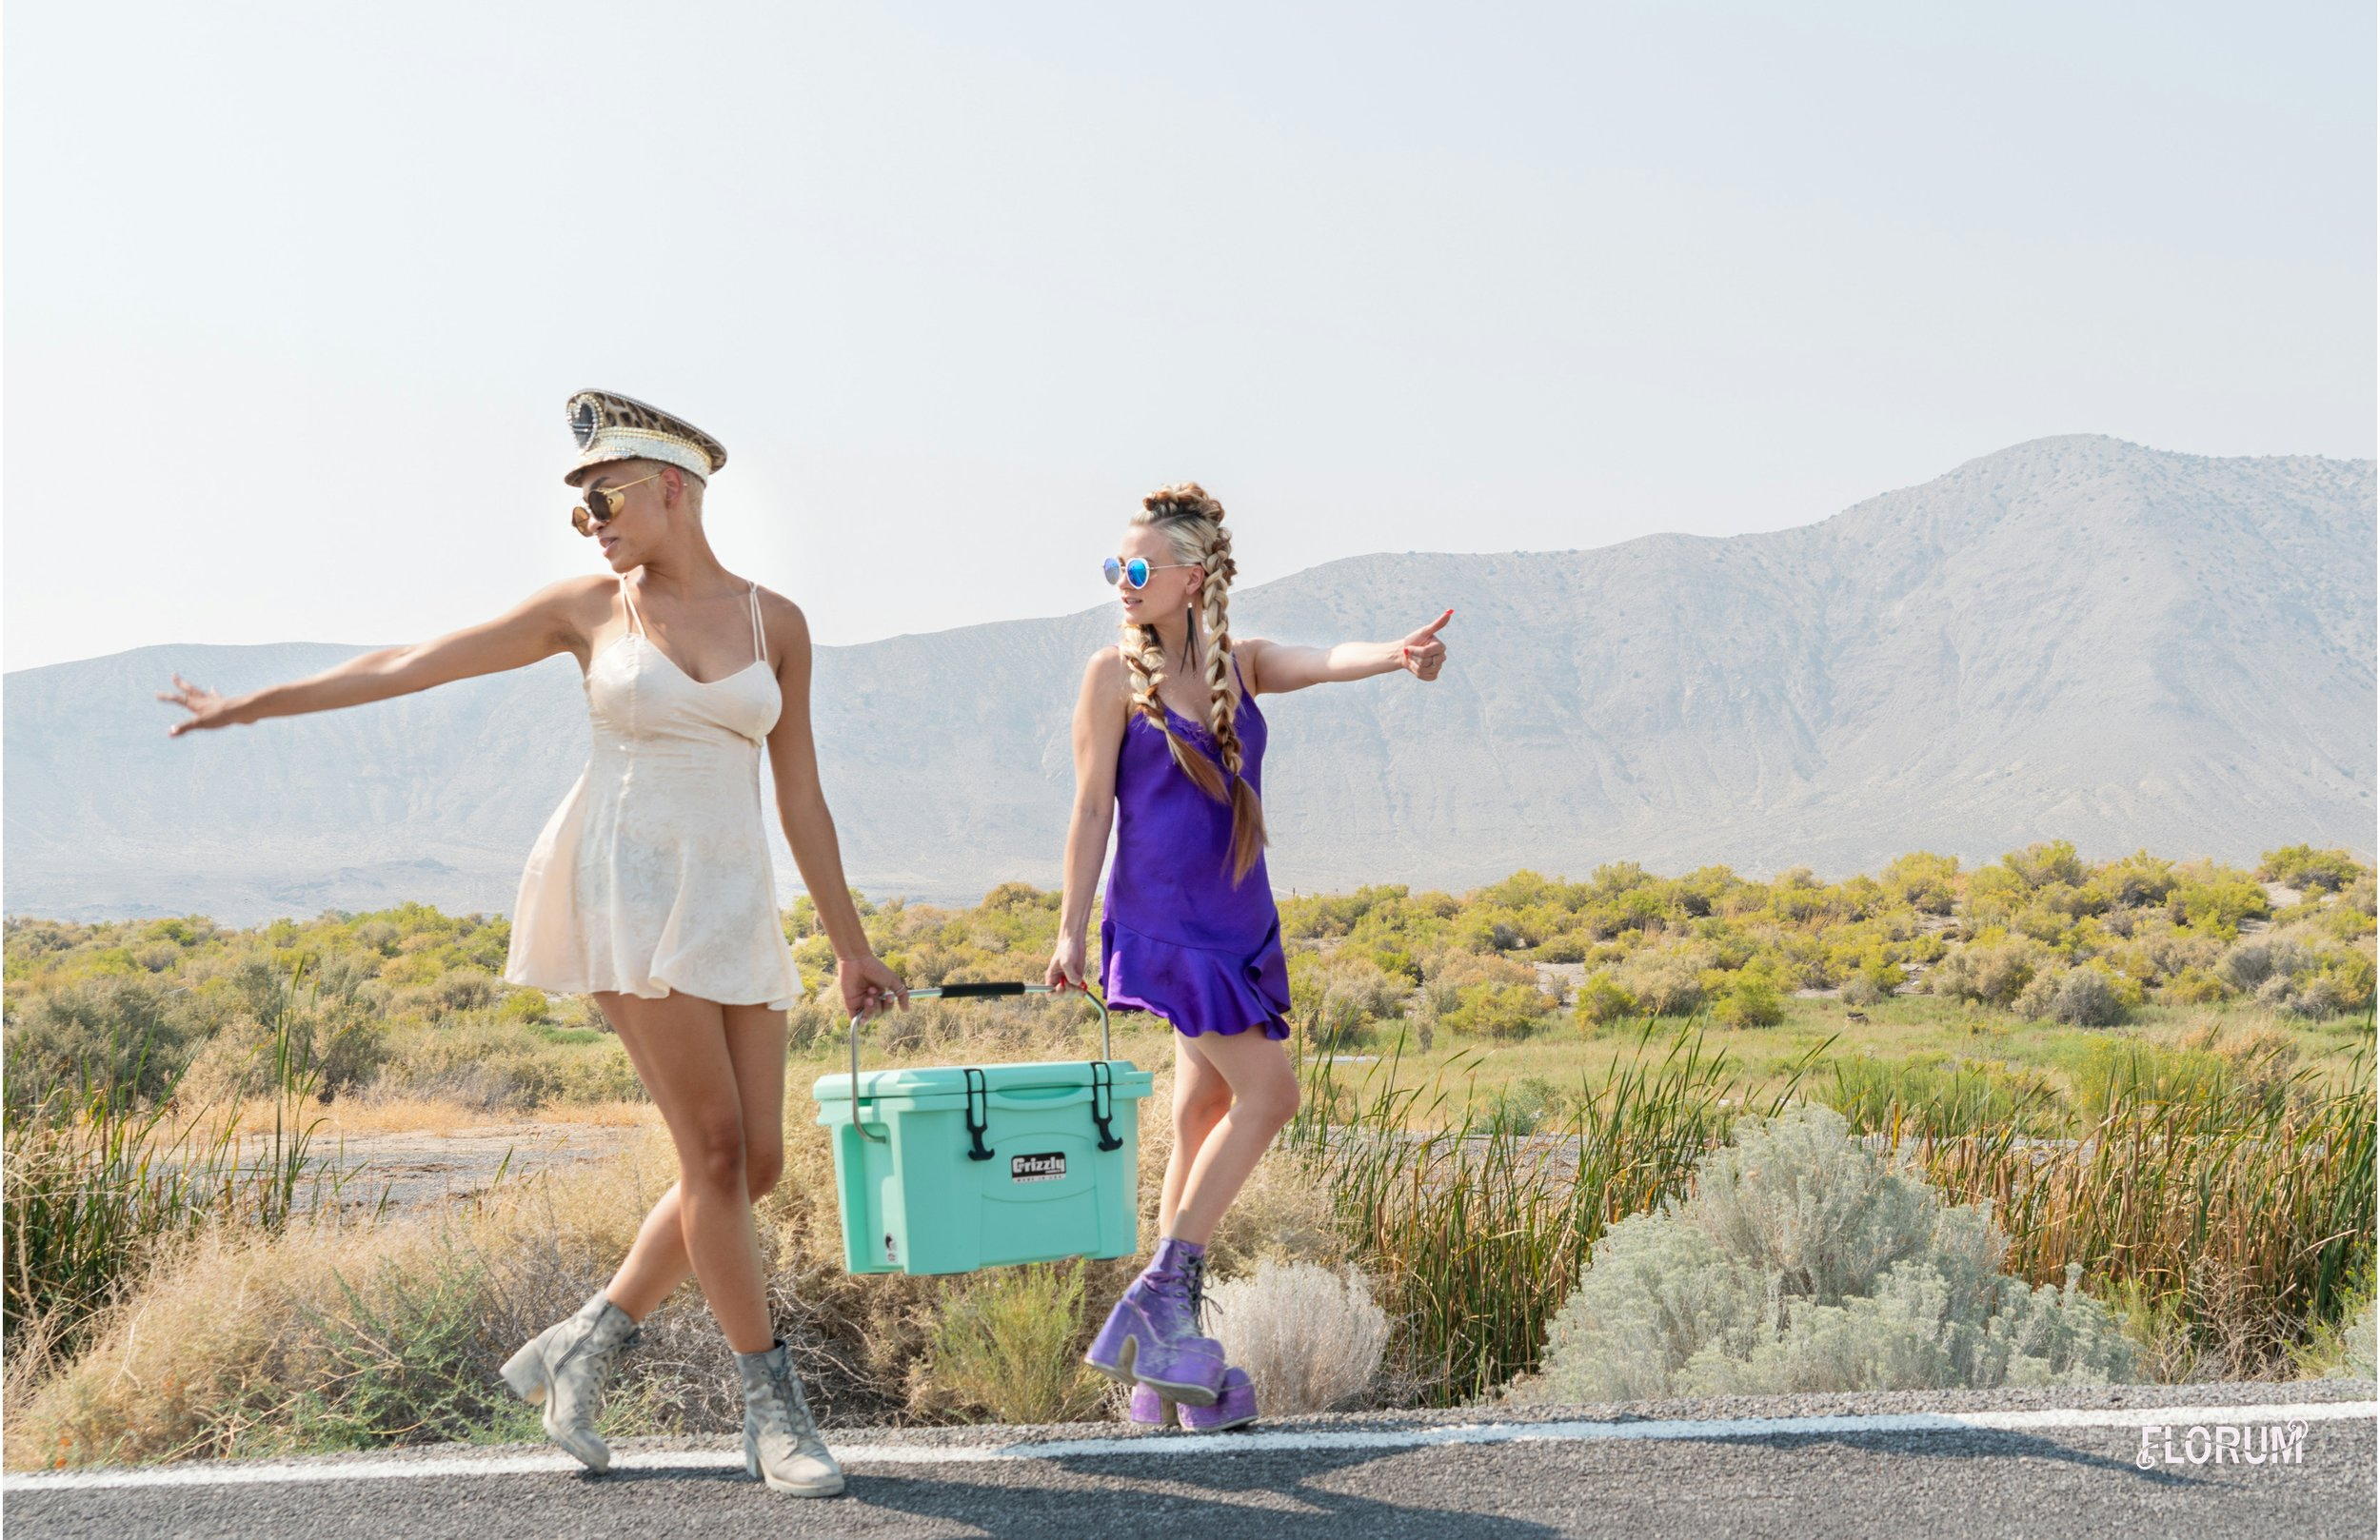 Both Yana and Kylee are wearing vintage Victoria Secret nightgowns. One of my favorite things to search for whenever entering a curated vintage shop or a charity shop is silk nightgowns. As you can see these vintage silk nightgowns were the perfect outfit to sport on the hot journey through the town and desert of Gerlach, Nevada on the way to Black Rock City.